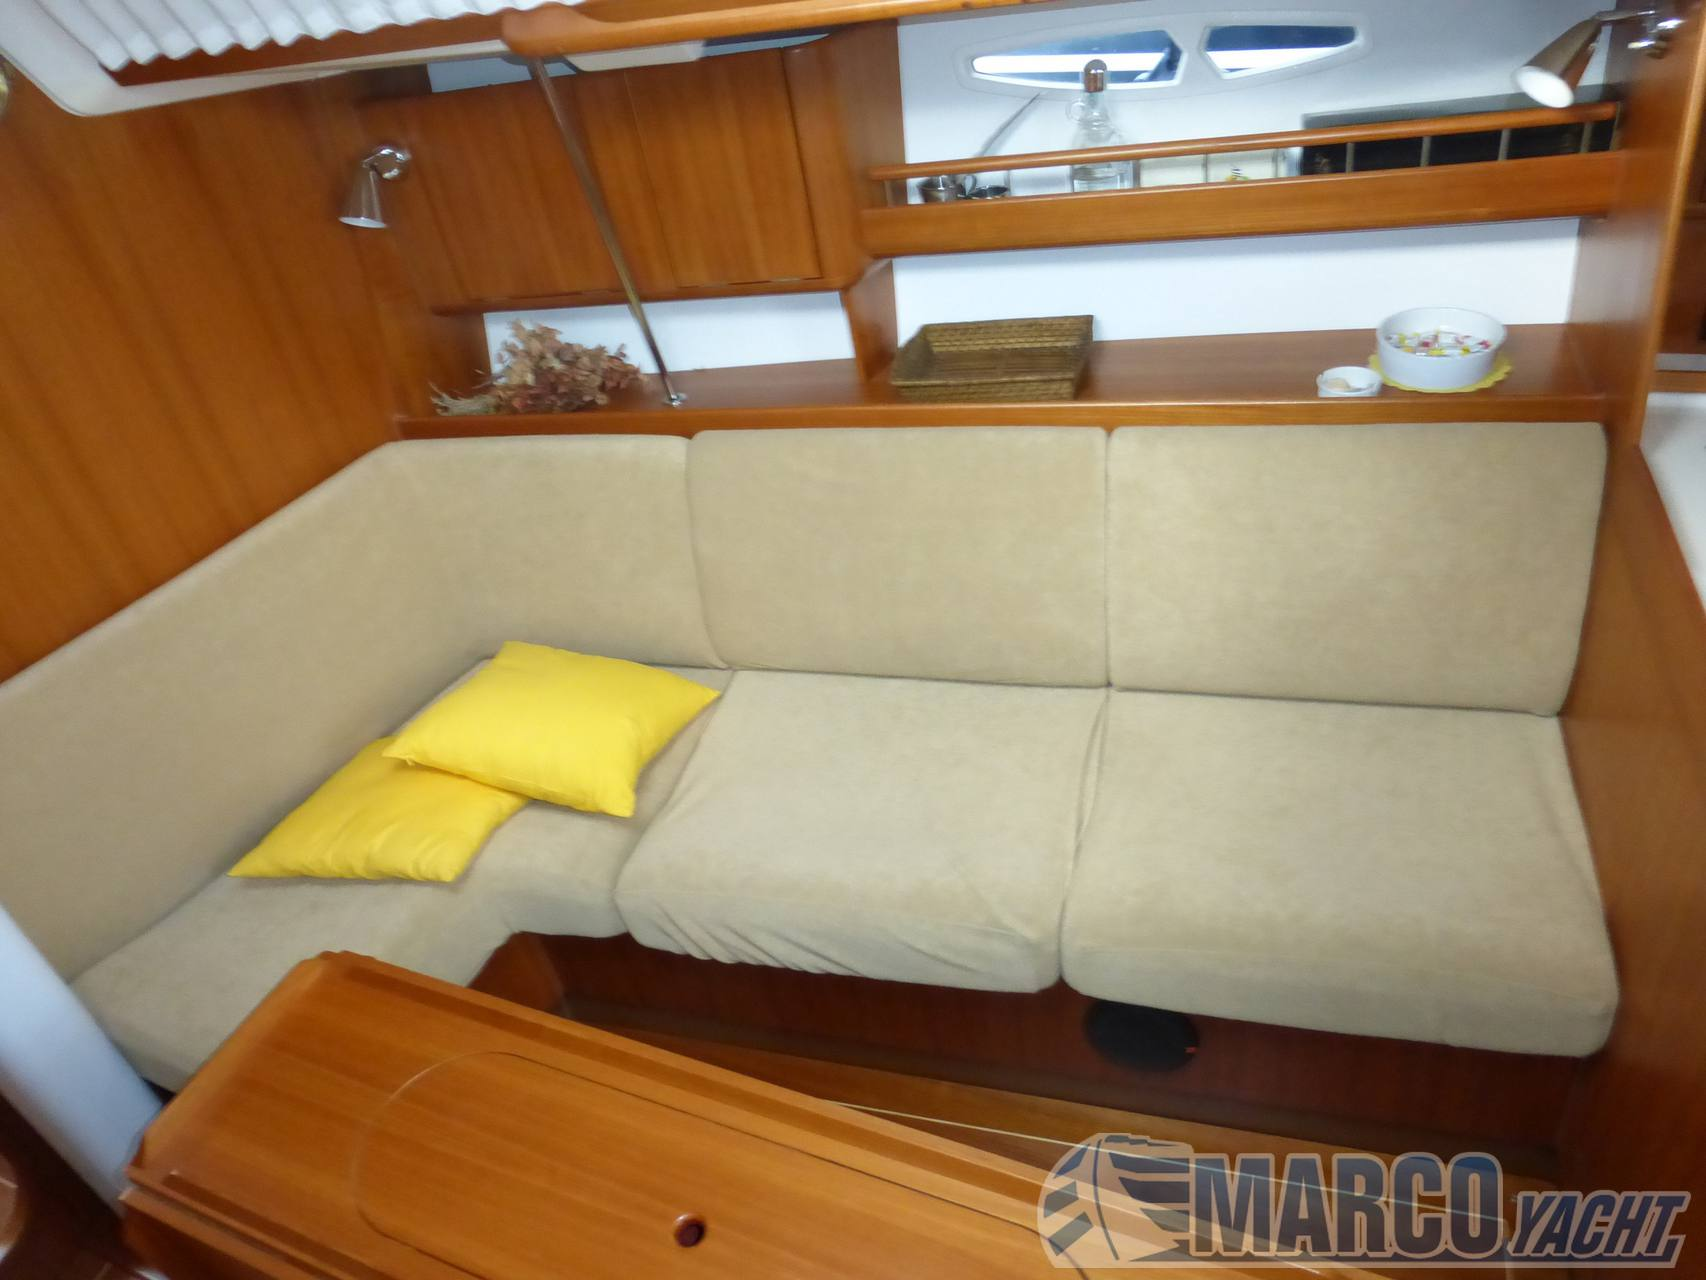 X-yacht X 40 Sailing boat used for sale